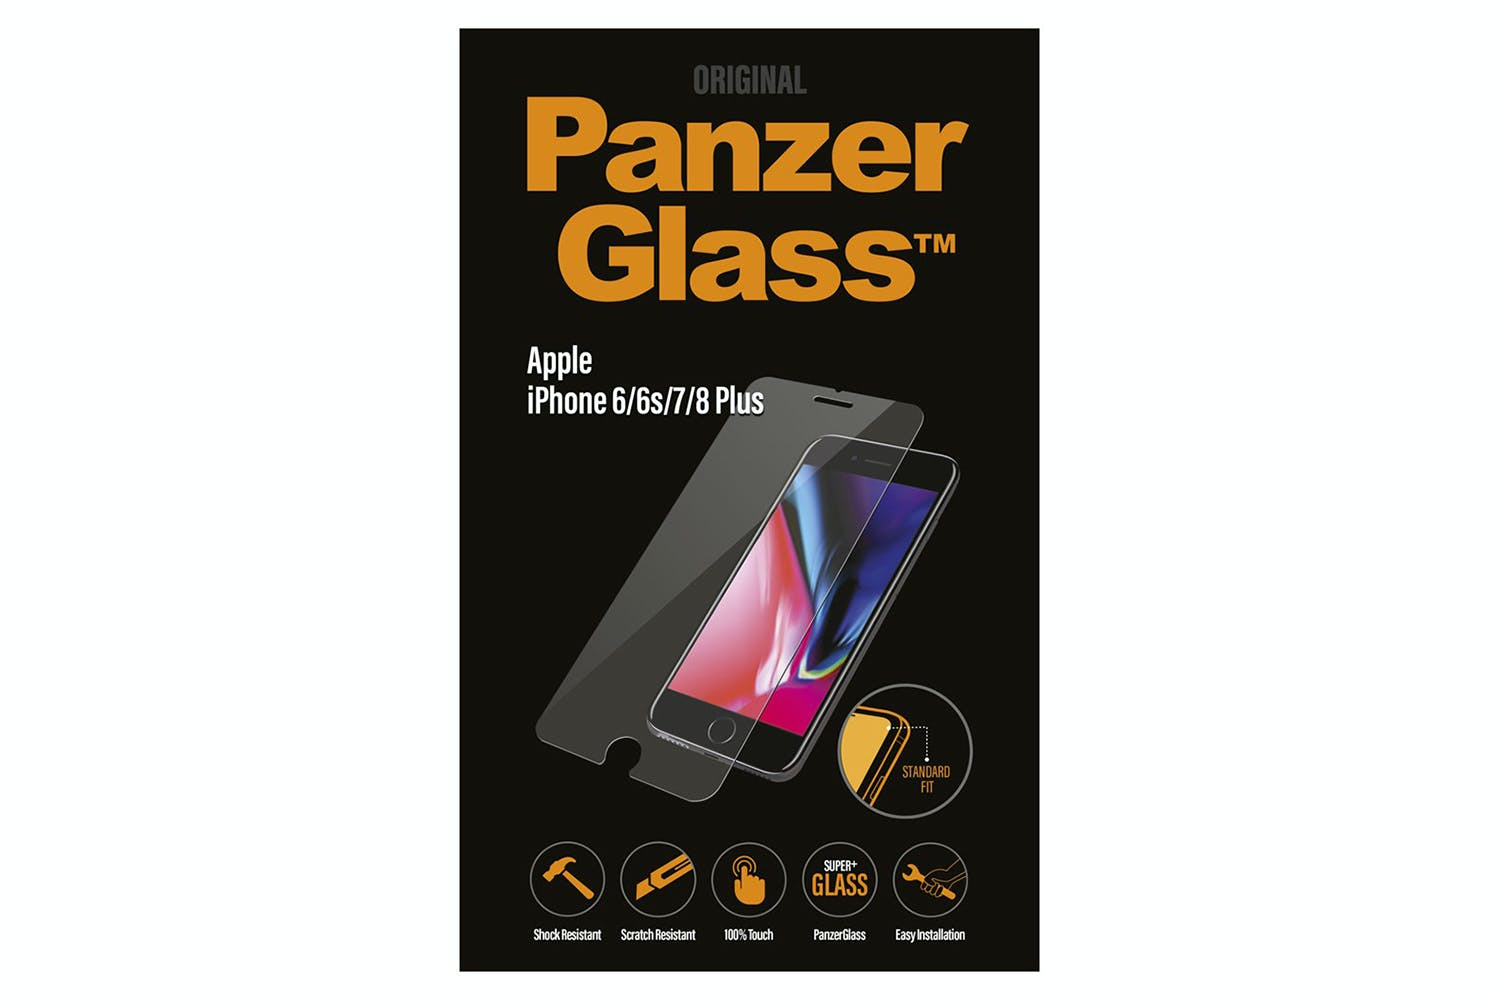 low priced 60ac4 18c90 PanzerGlass iPhone 6/6s/7/8 Plus Screen Protector